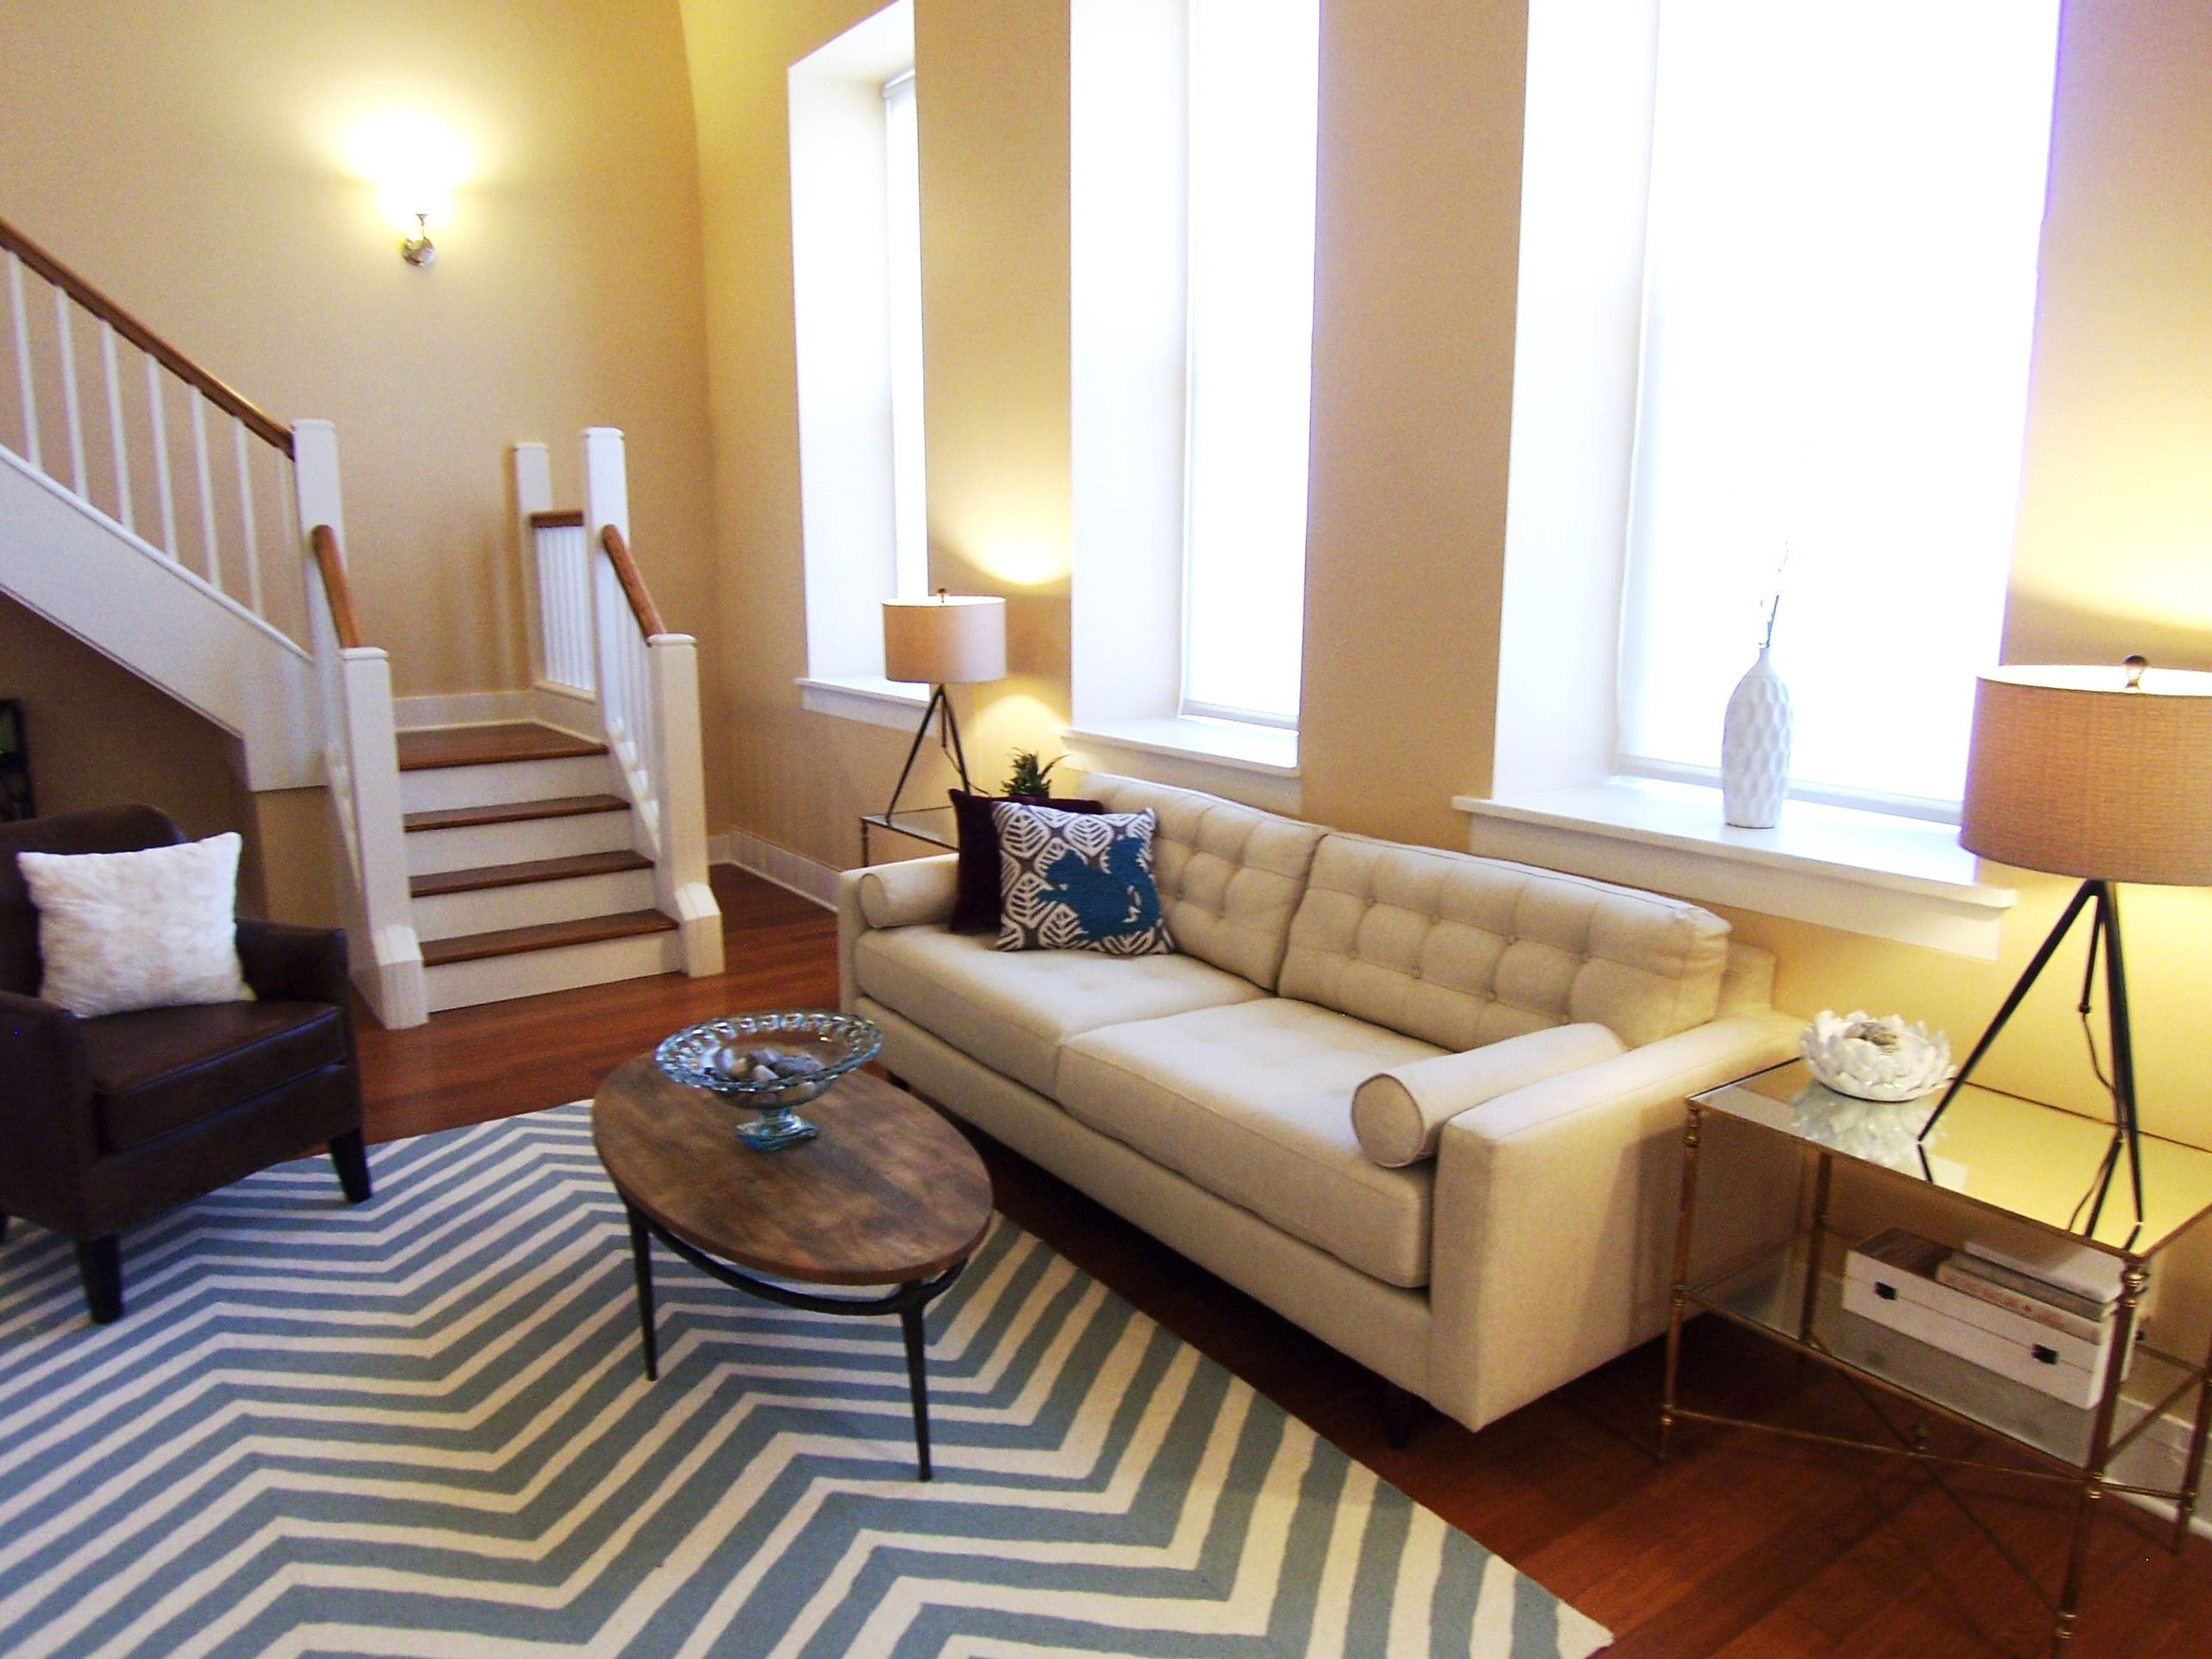 The Academy Building Downtown Rochester Ny Model Apartment Staging Sts Latest Project